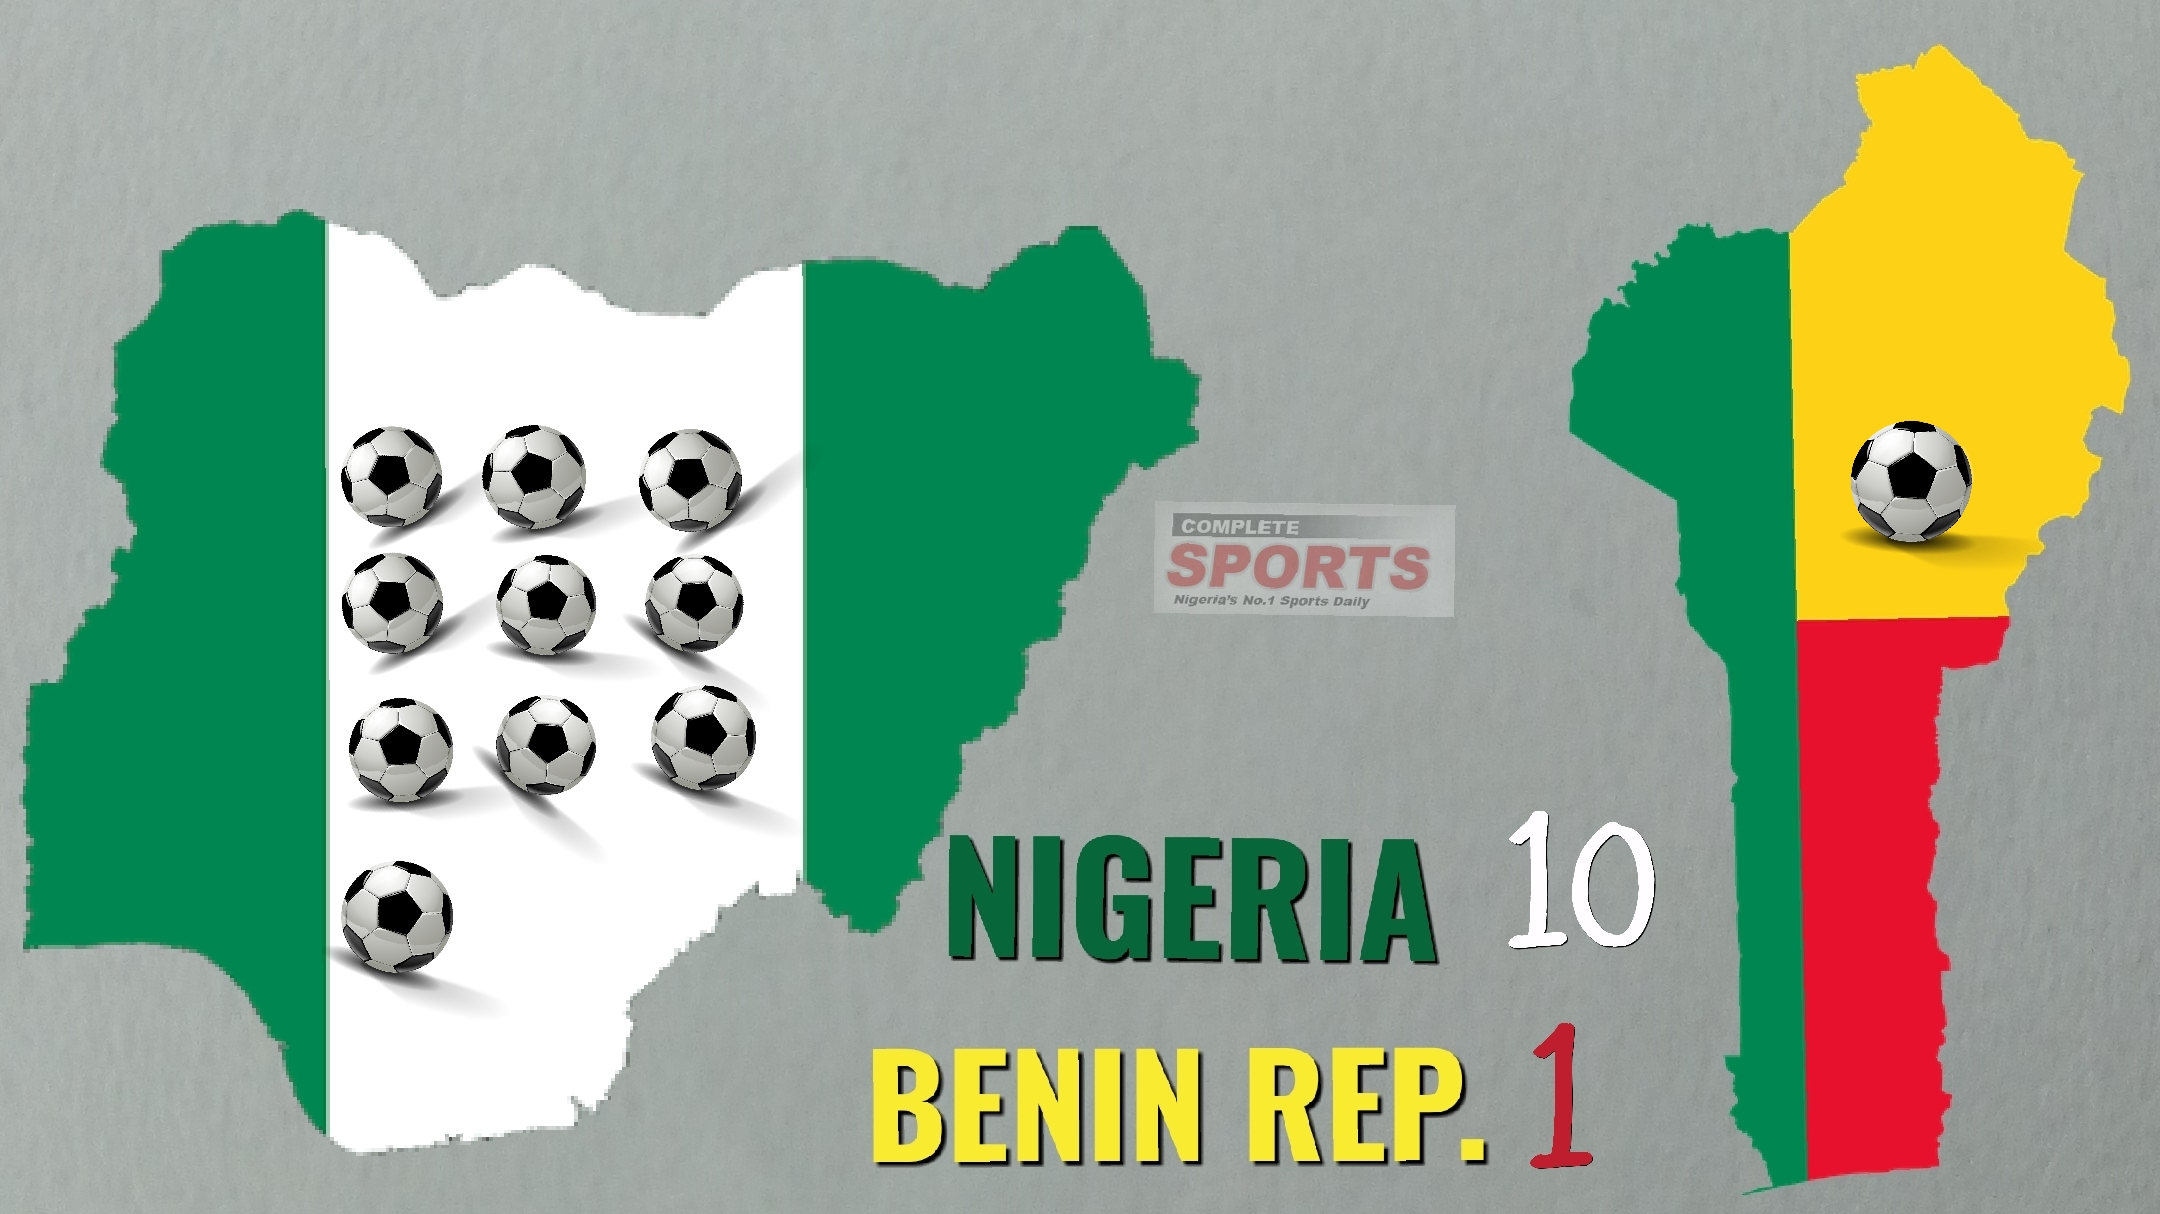 MASSACRE: How Nigeria Destroyed Benin Republic 10-1 In 1959!